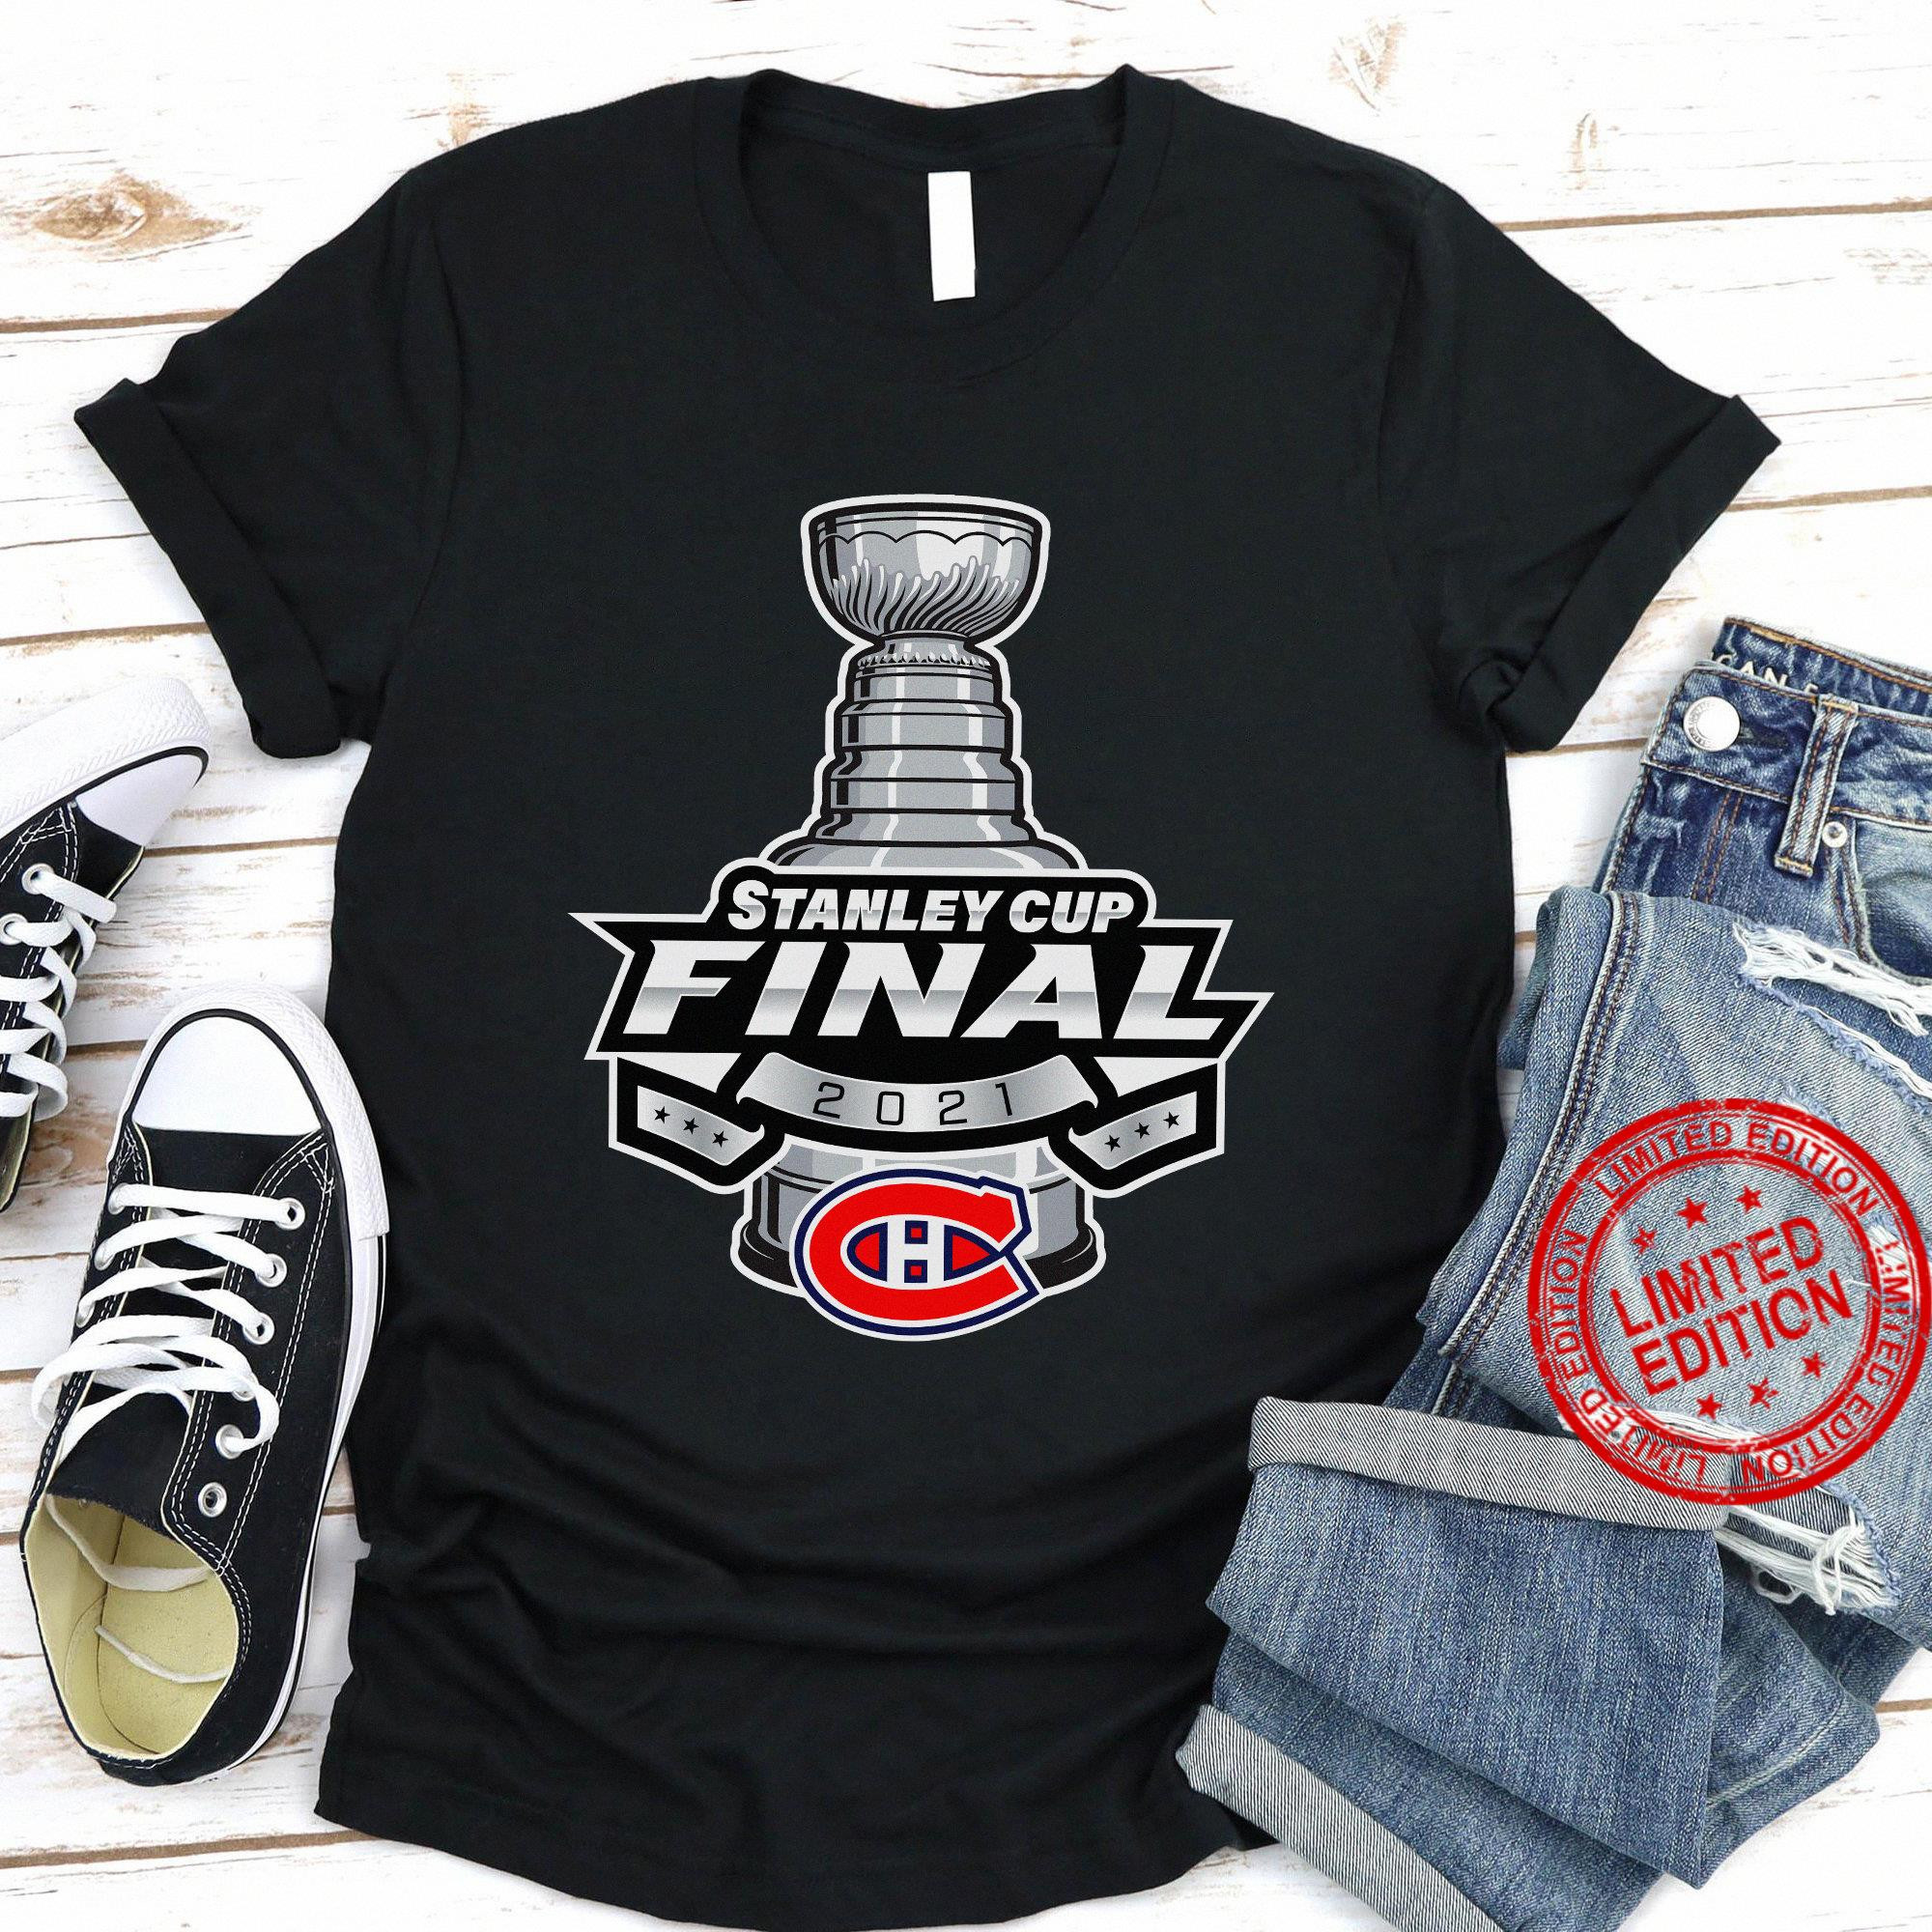 Stanley Cup Final 2021 Montreal Canadiens Shirt